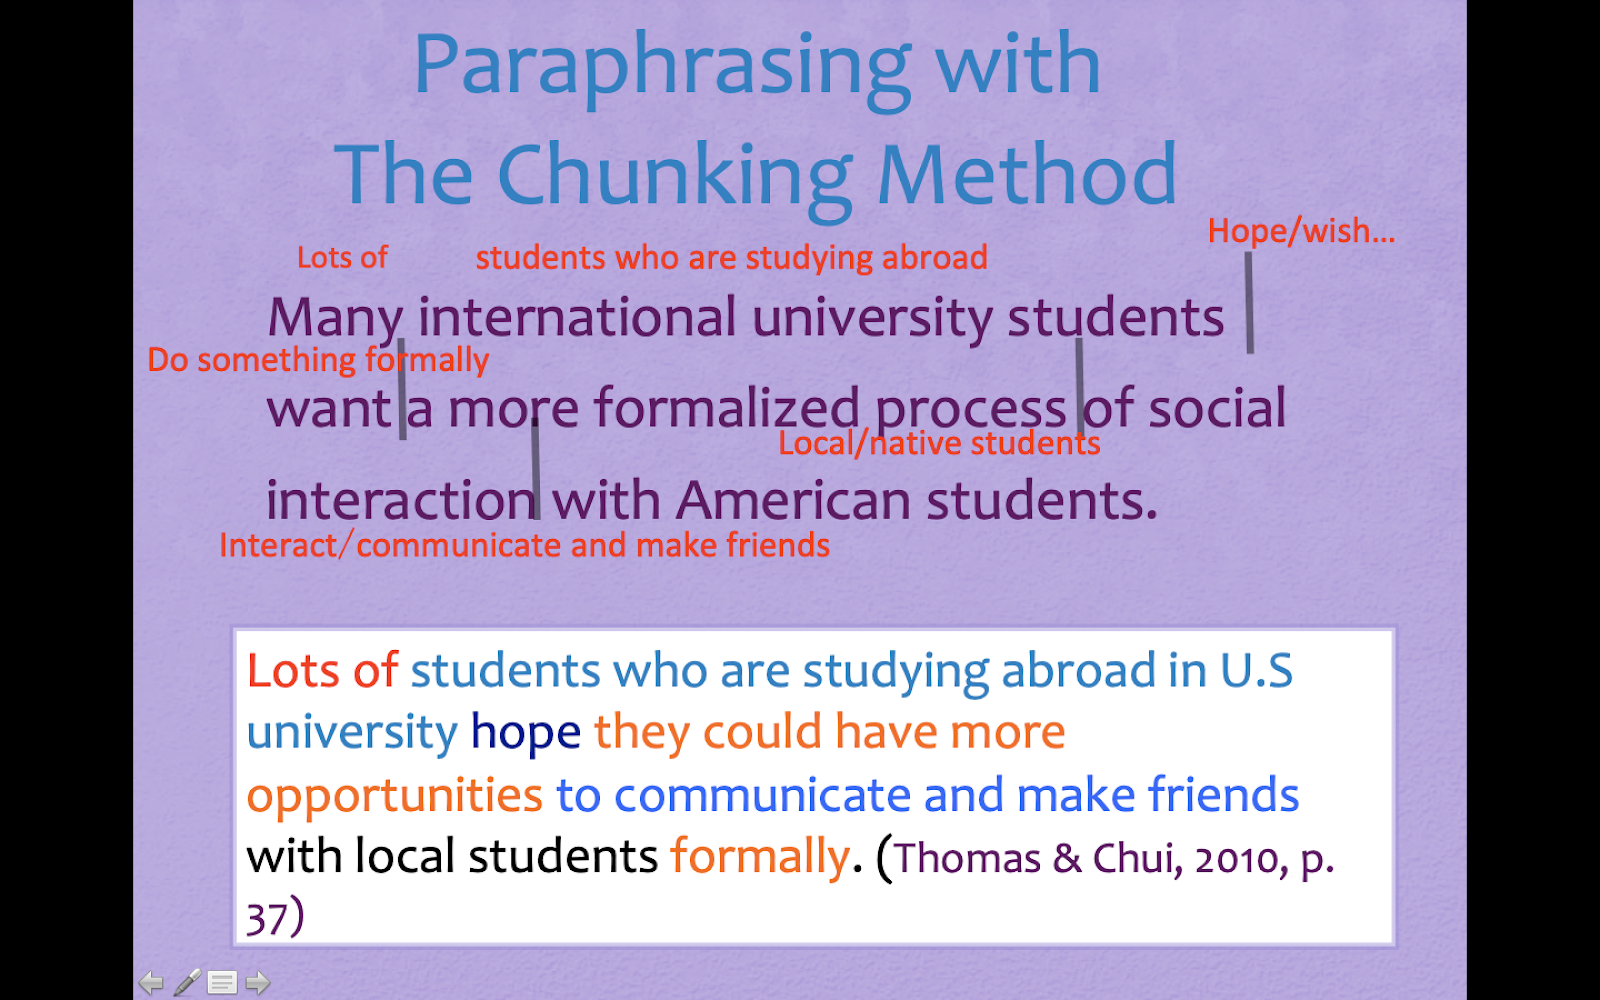 Teaching the Challenging but Essential Academic Writing Skill of Paraphrasing